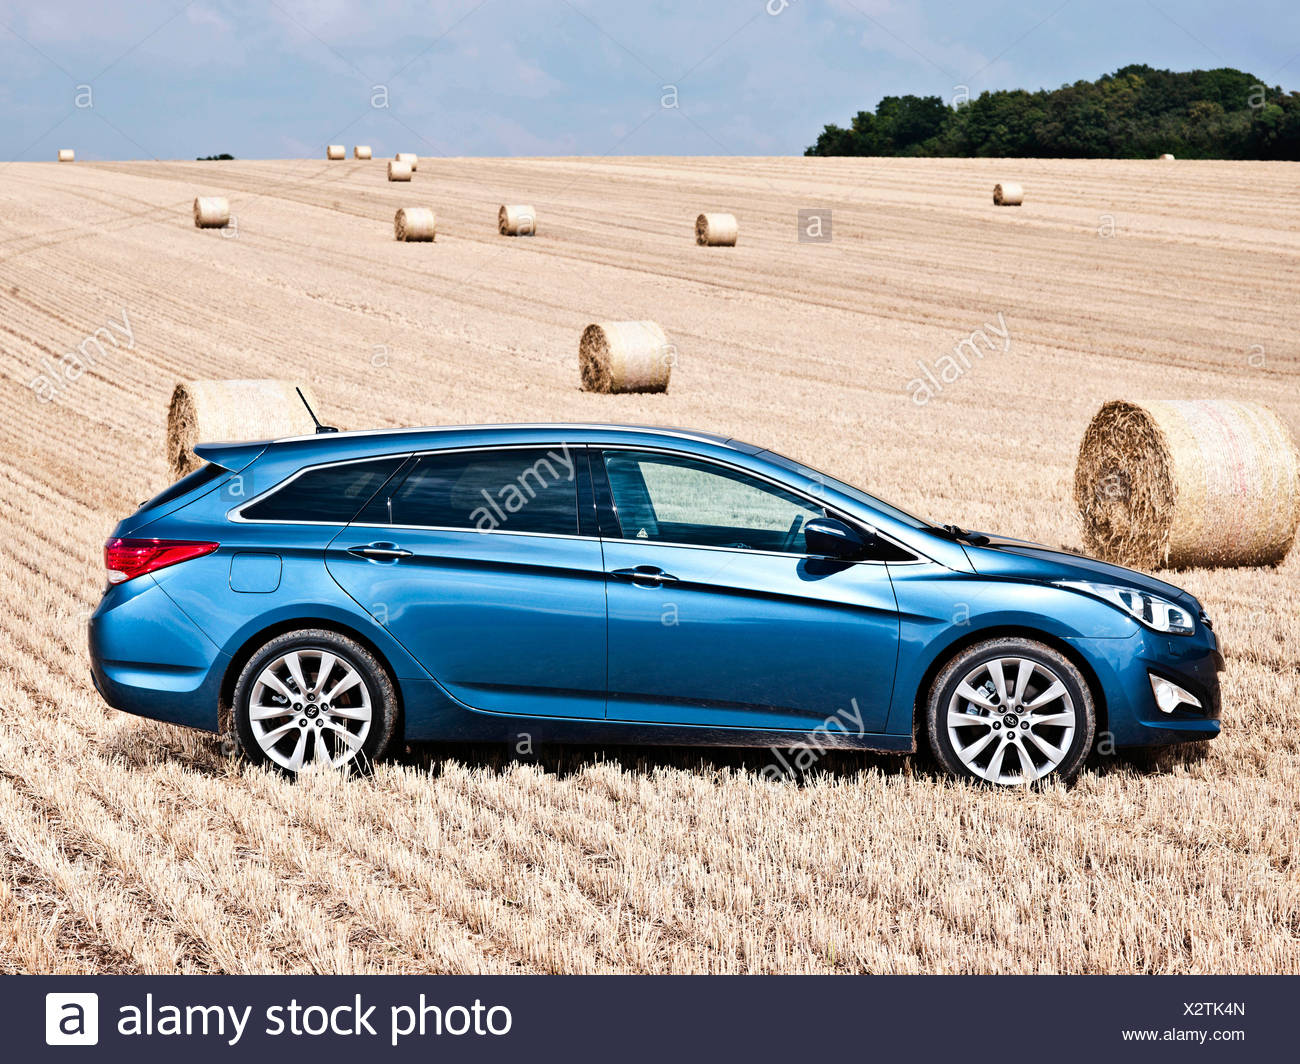 Hyundai i40, large family car, in a hayfield, Southampton, UK, 20 08 2012 - Stock Image